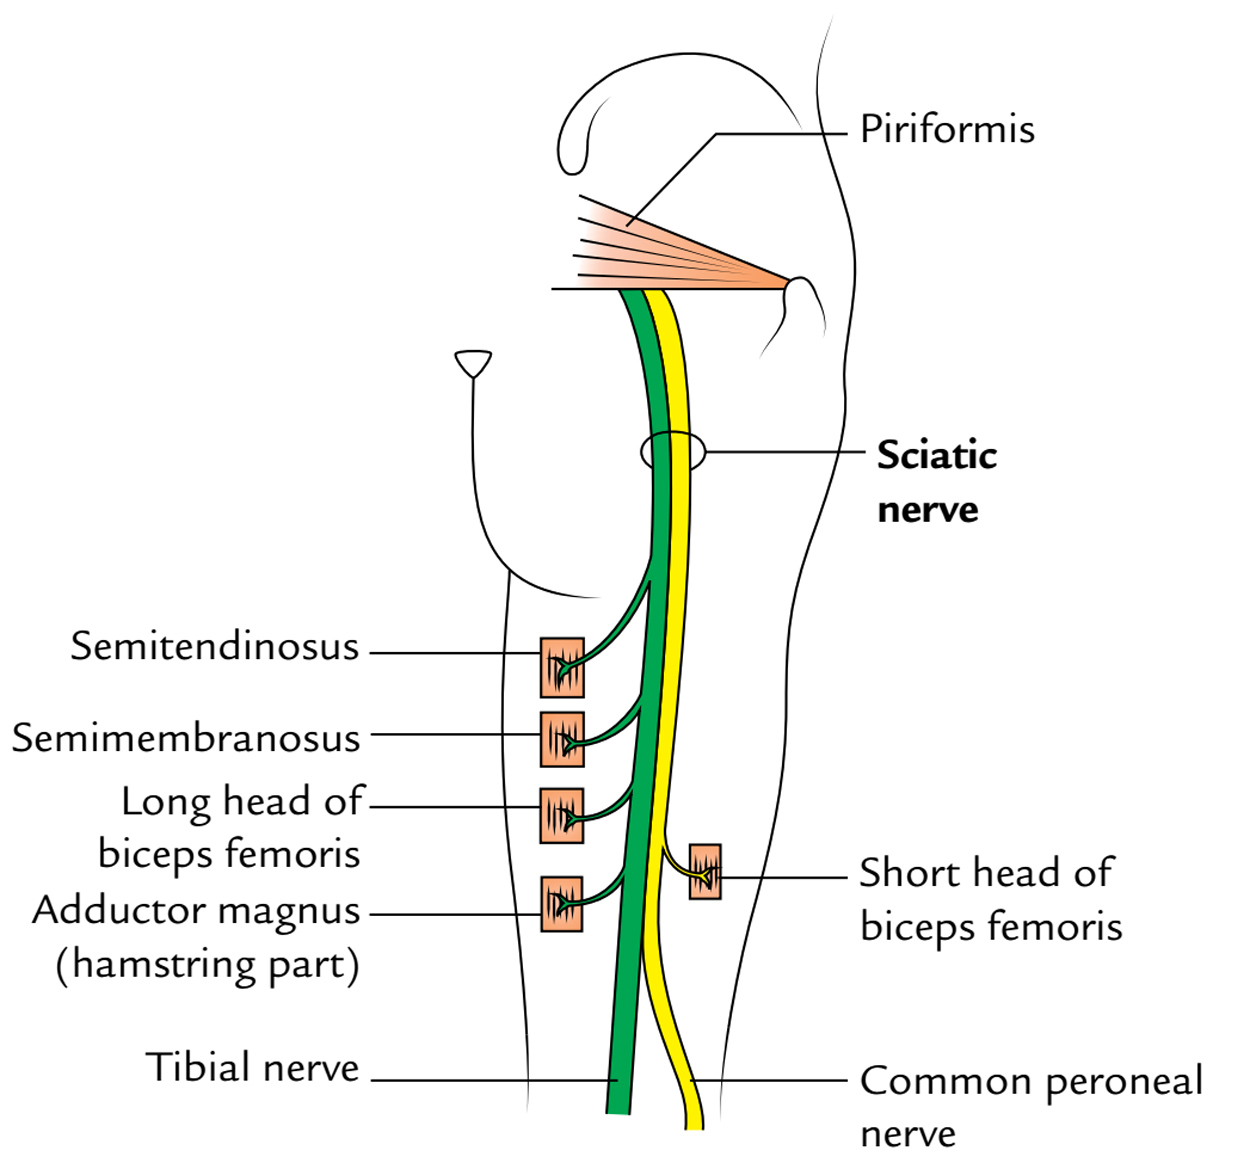 Easy Notes On 【Sciatic Nerve】Learn in Just 4 Minutes! Sciatic Nerve Branches